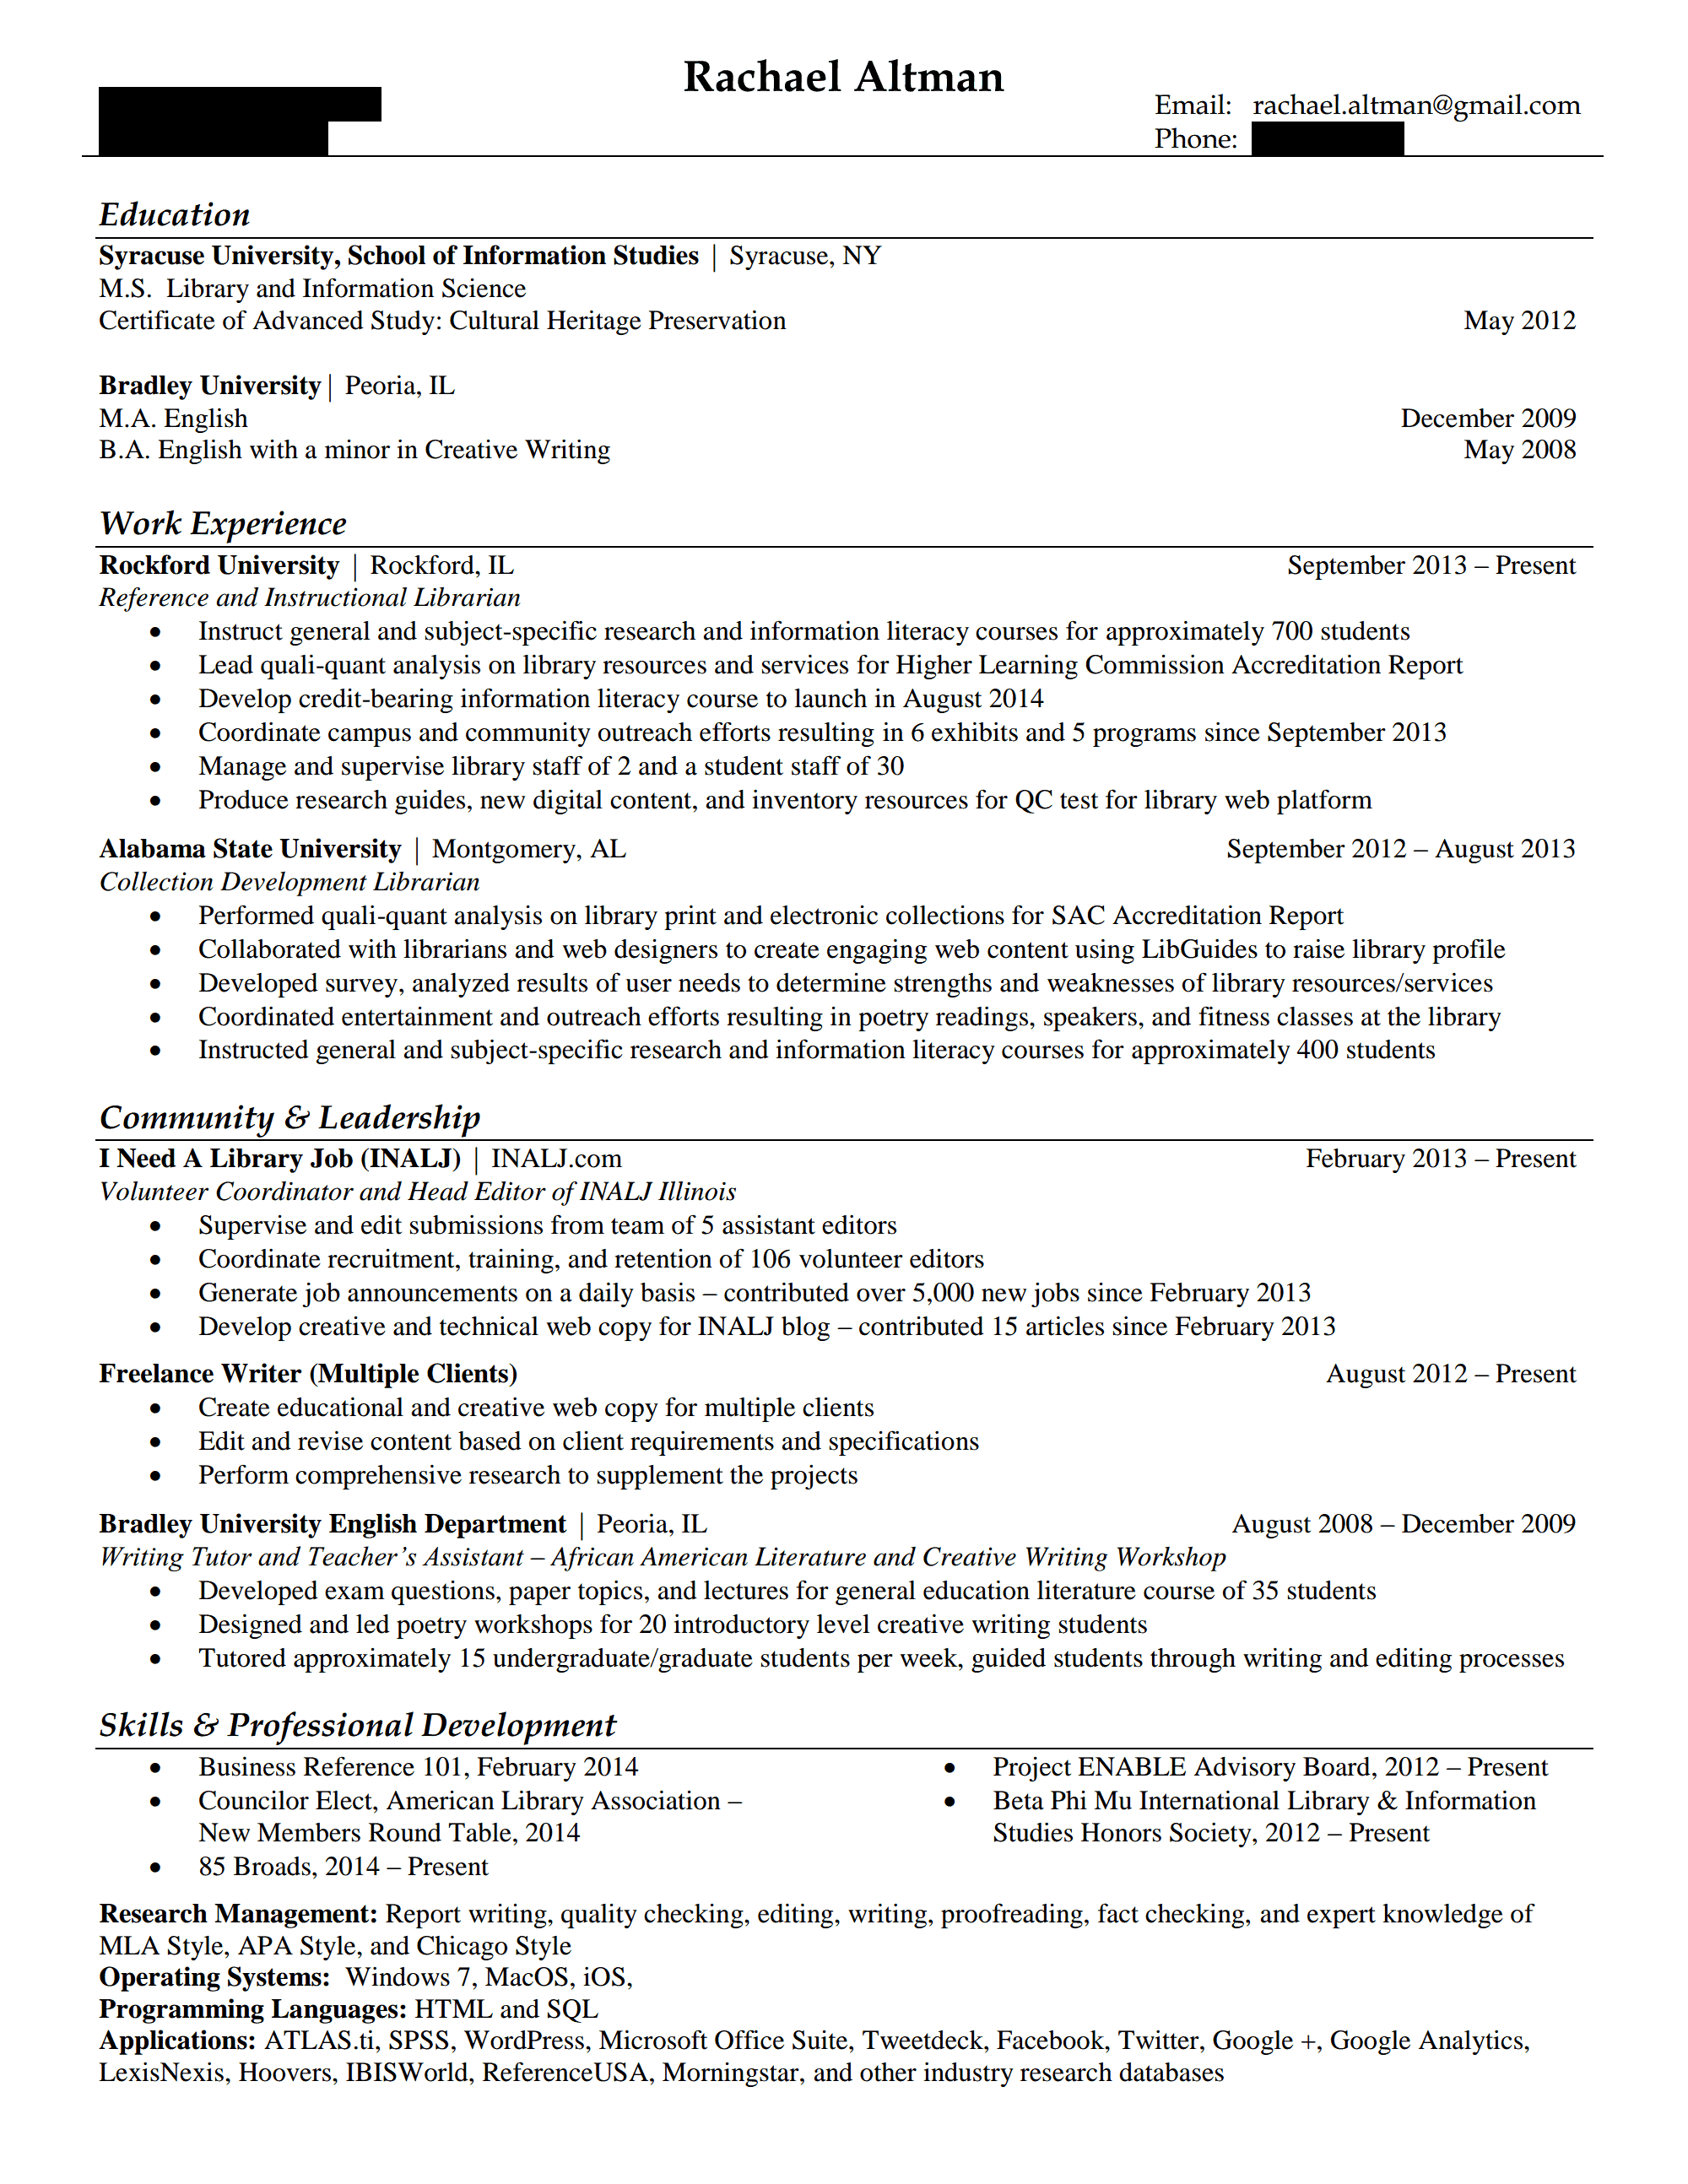 resumes librarians sample curriculum vitae cv good job resumes librarians resume outline layout blank template outlines for public review rachael altman